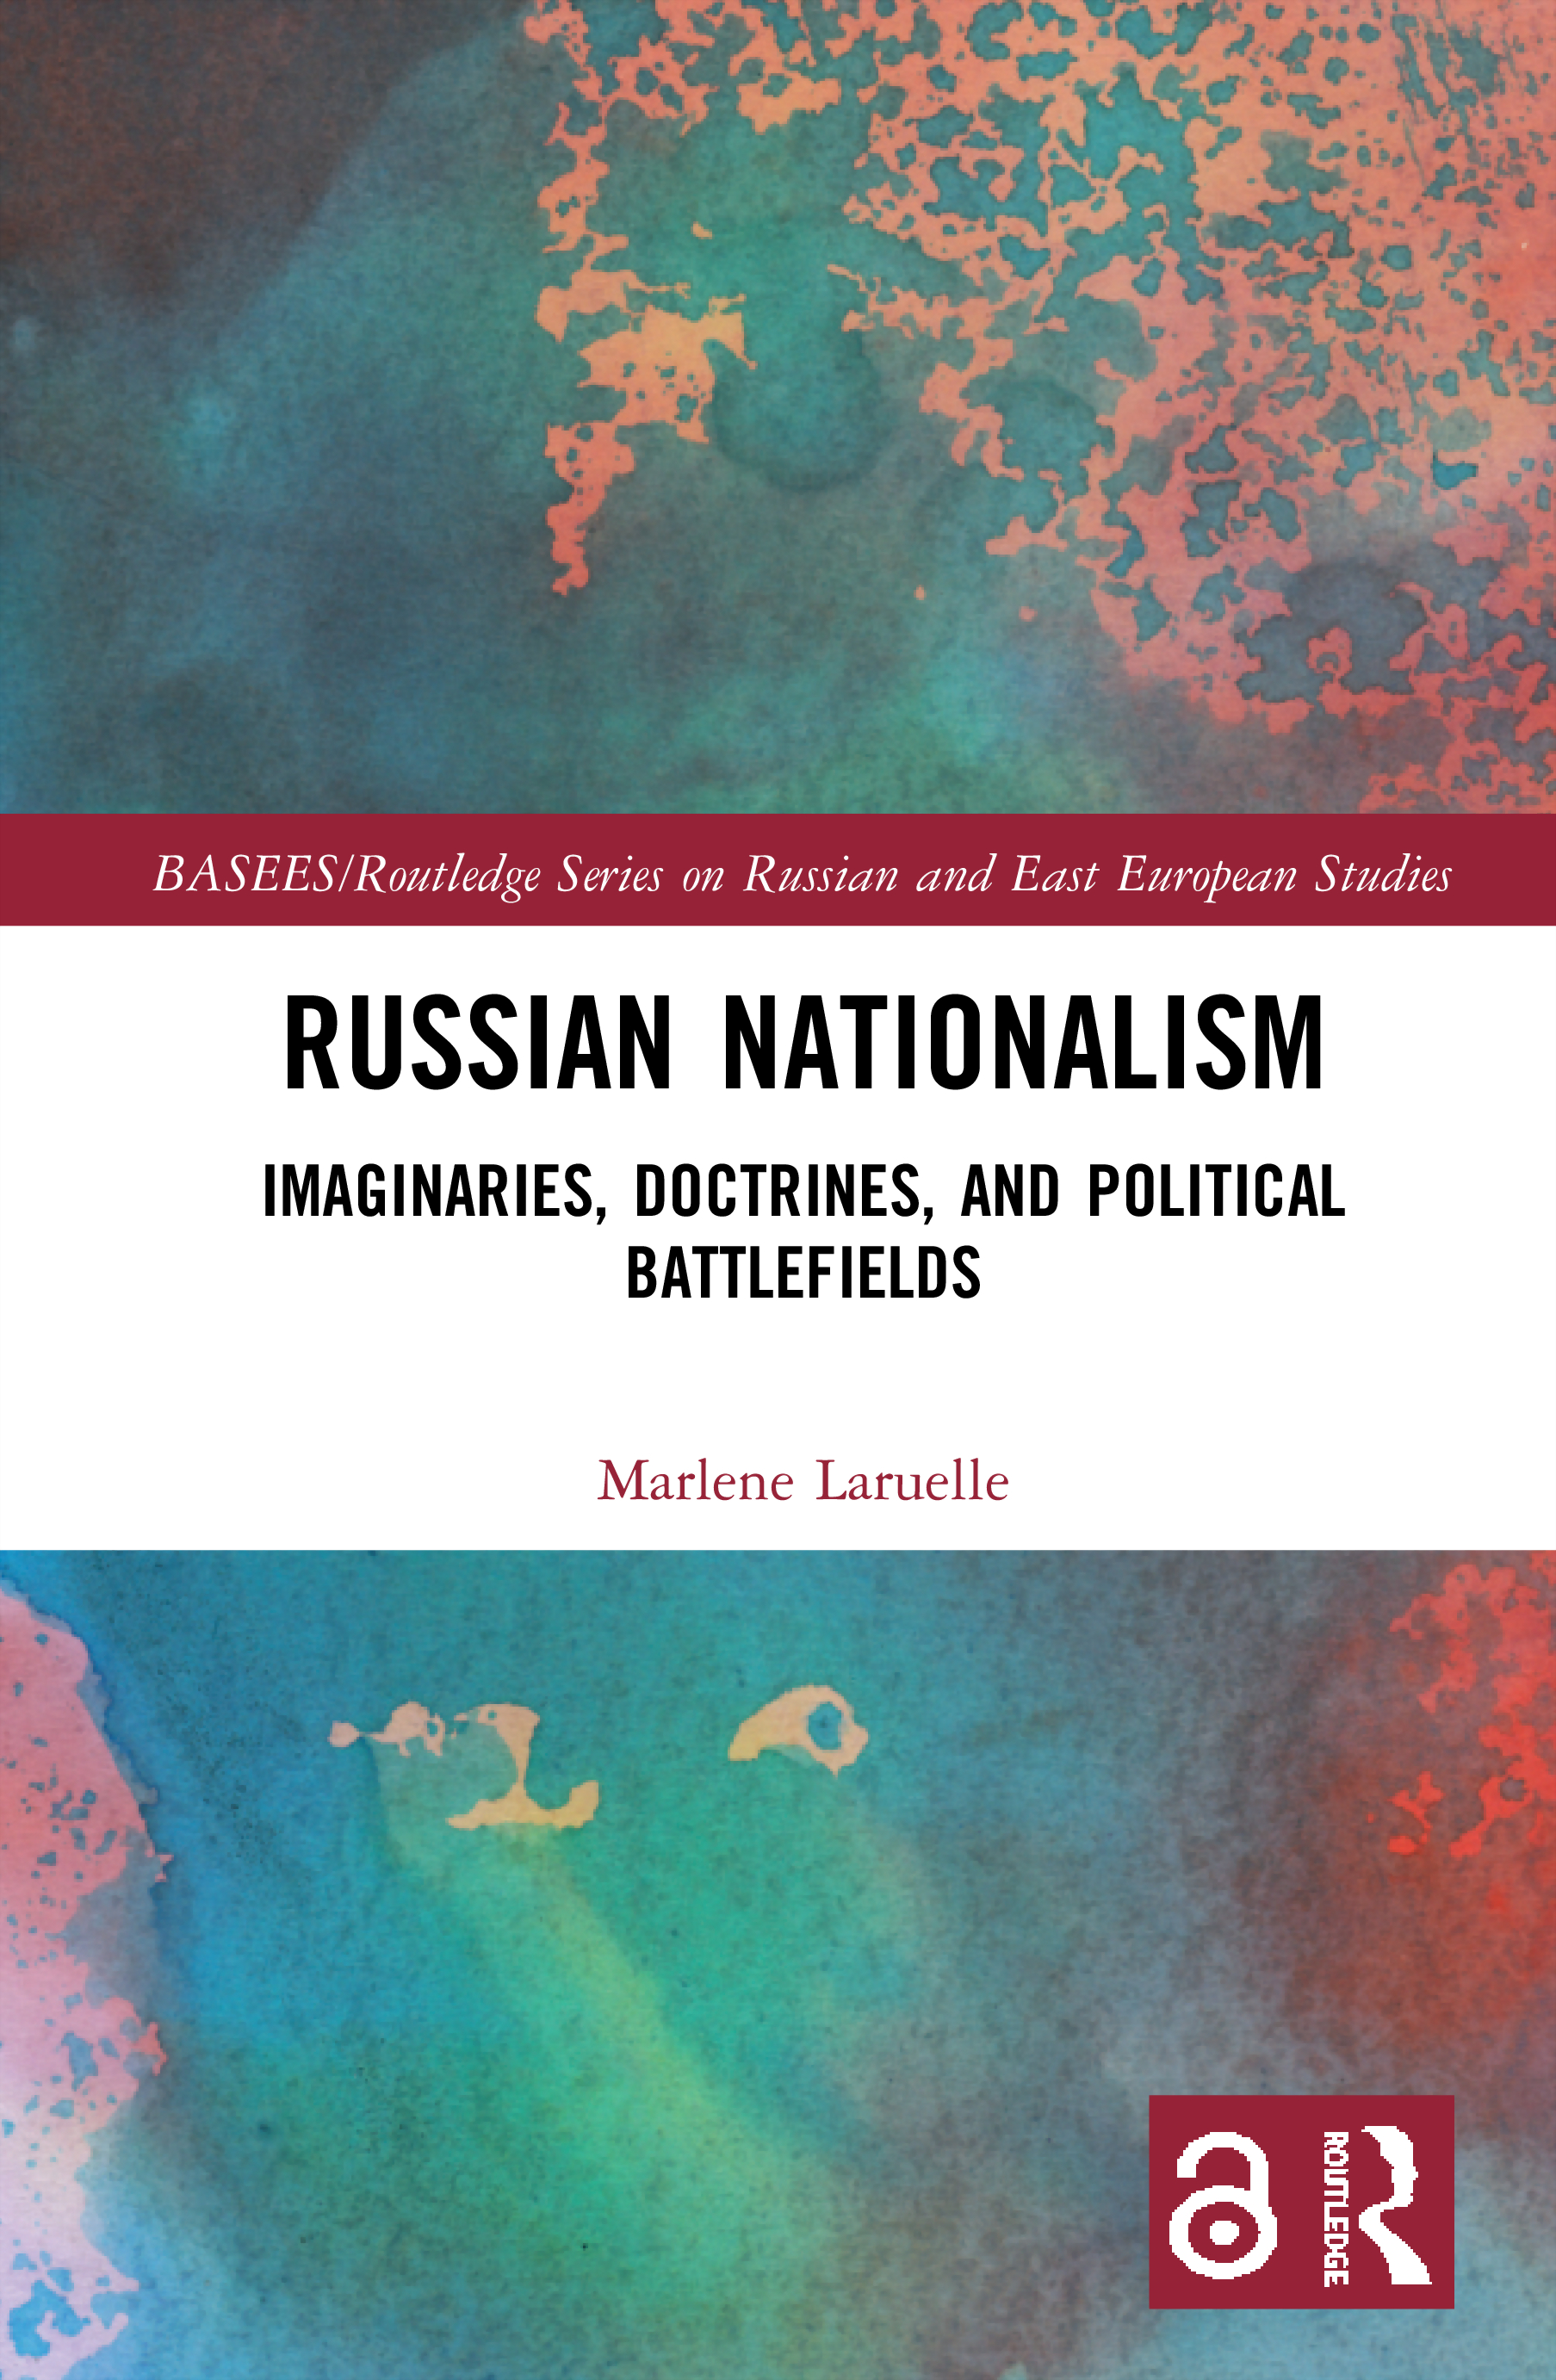 Russian Nationalism: Imaginaries, Doctrines, and Political Battlefields book cover